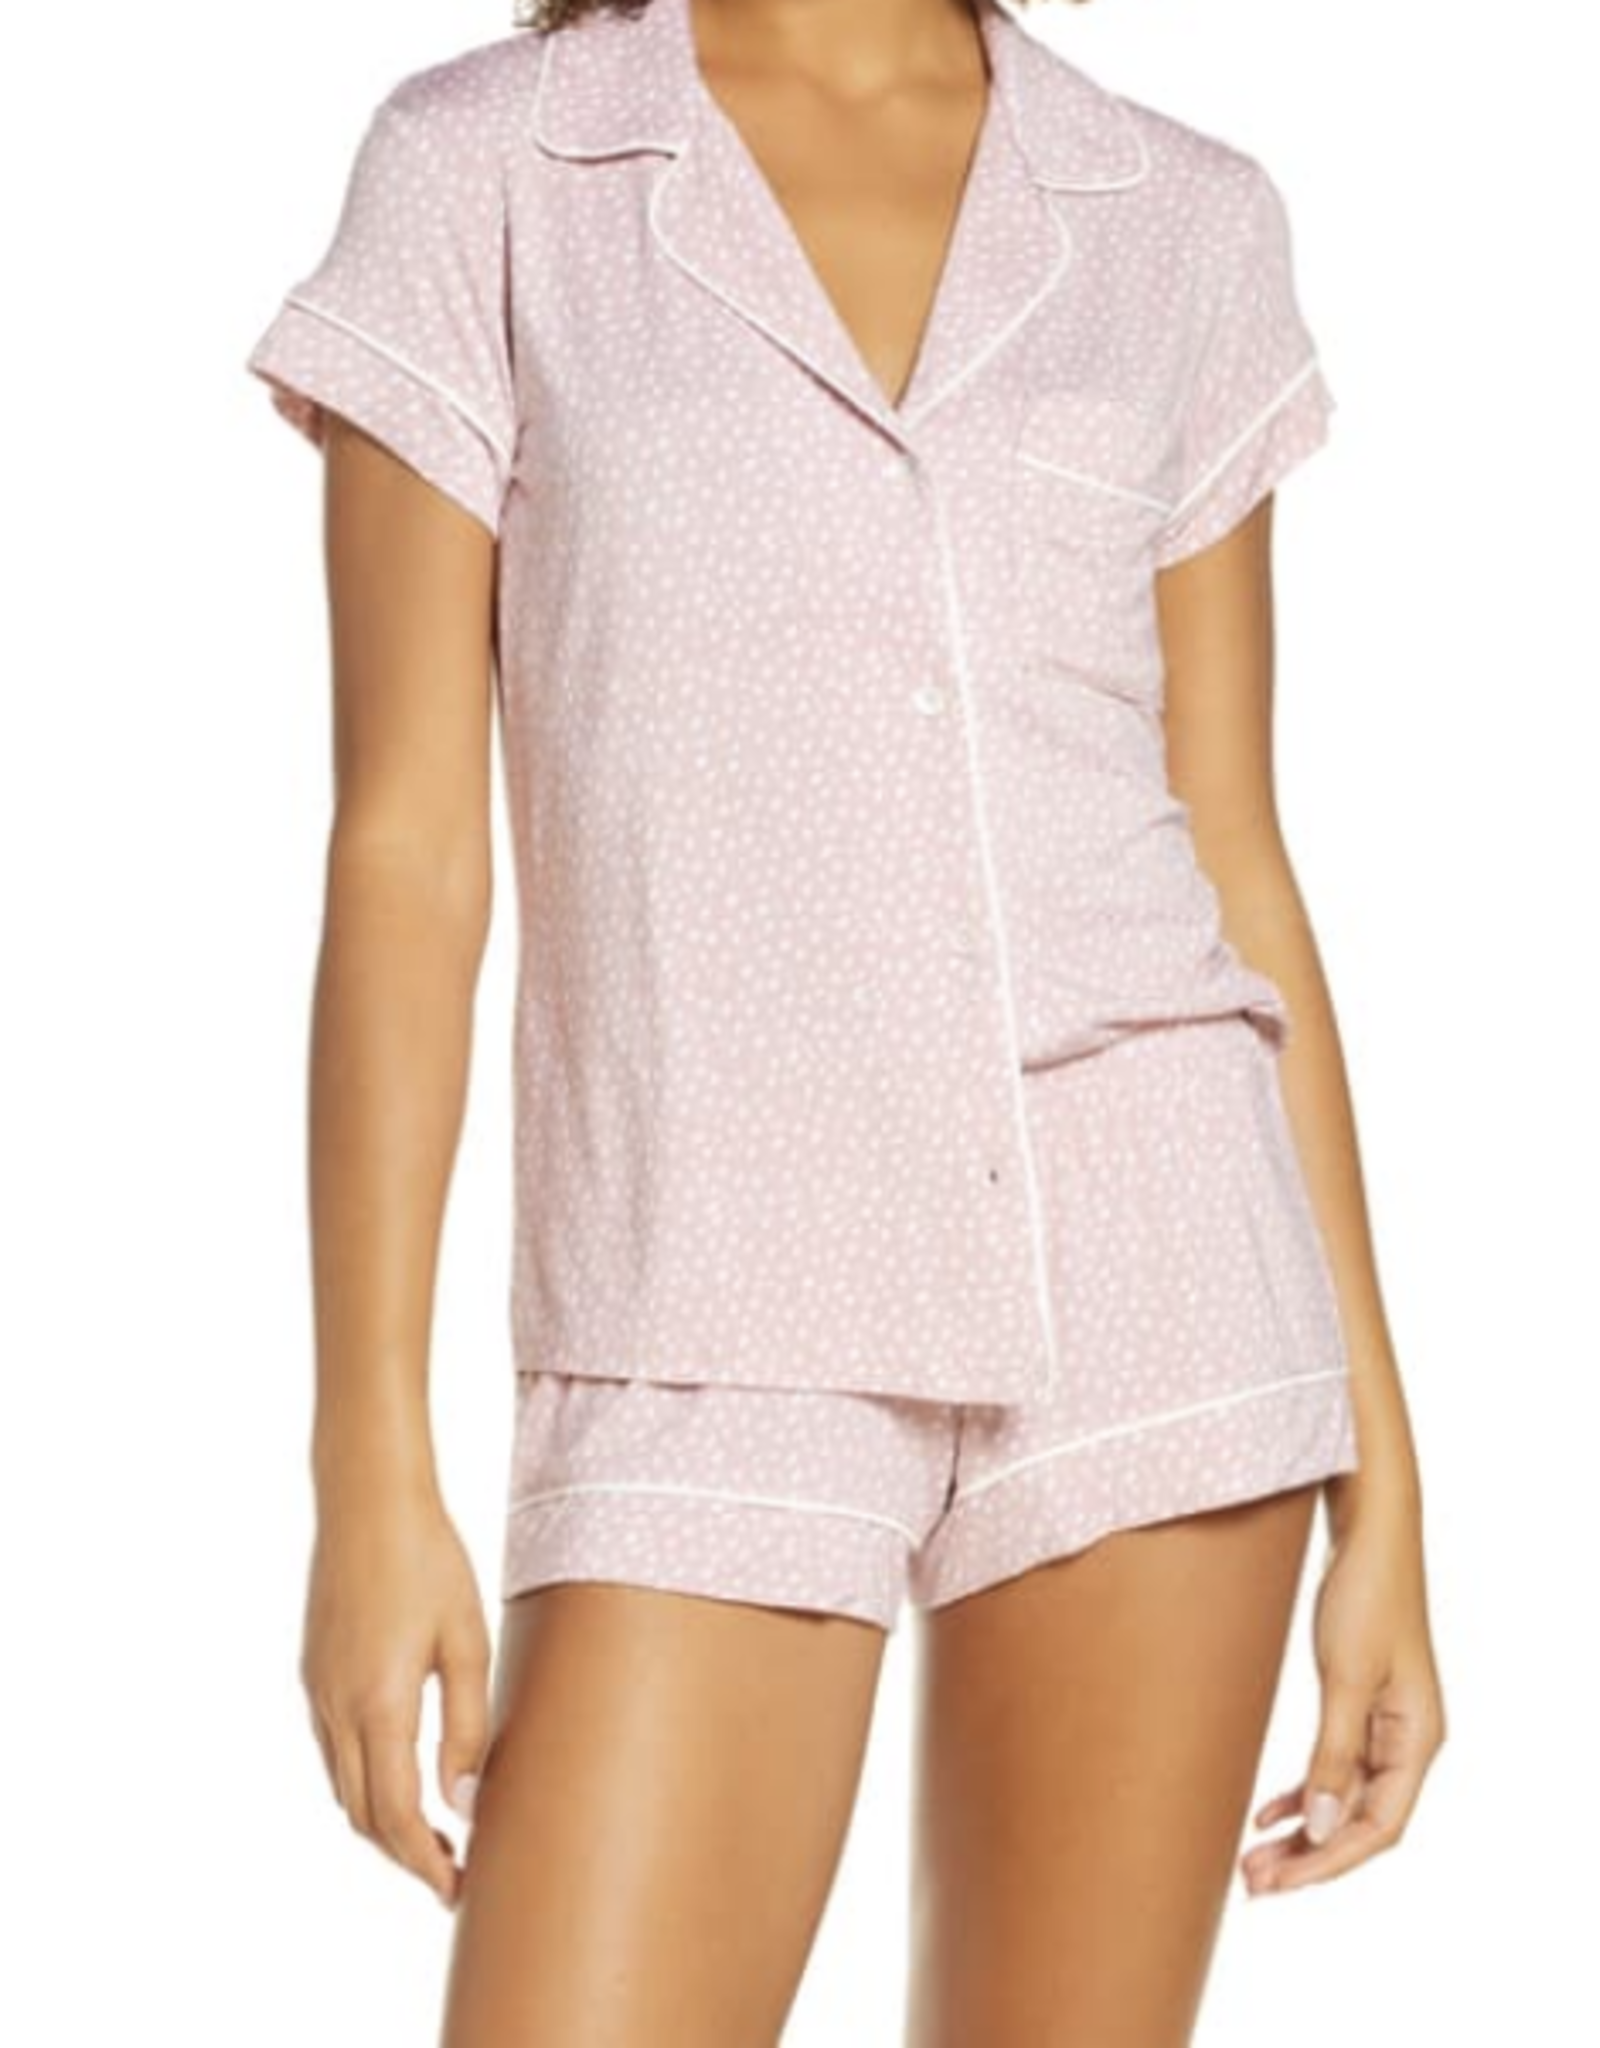 Eberjey Felix Misty Rose/Ivory Sleep Chic The Short PJ